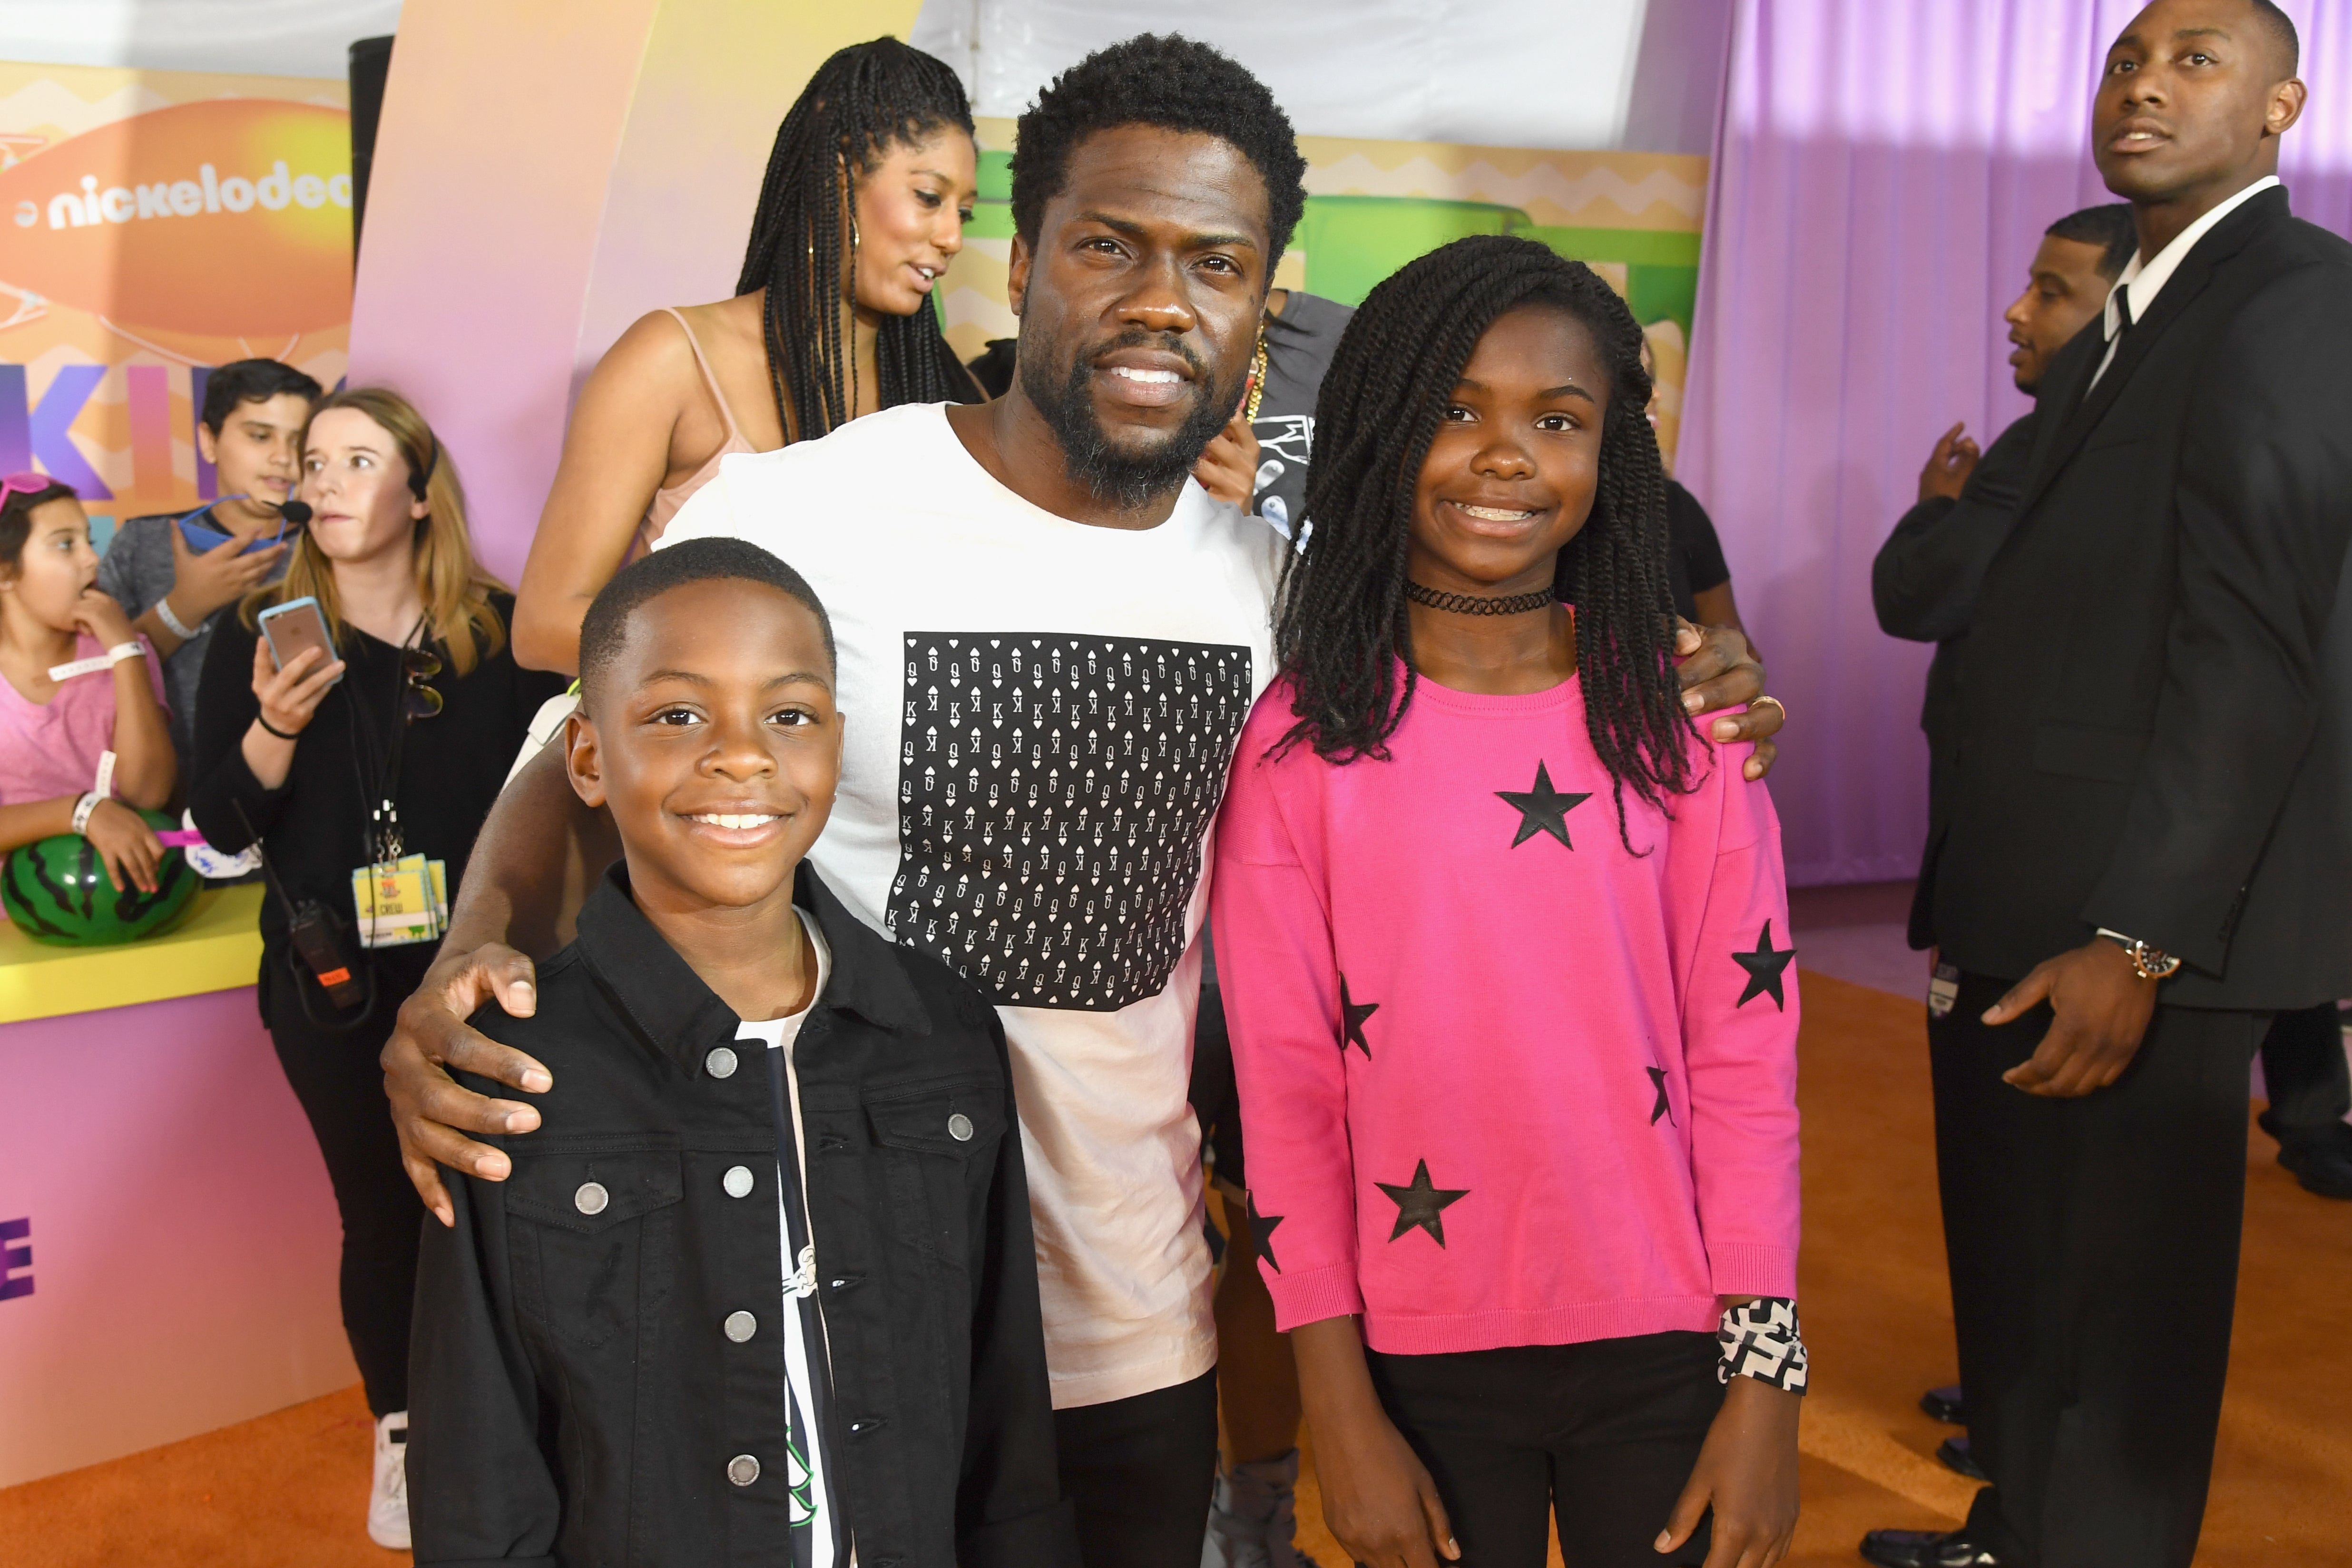 Kevin Hart And Ex-Wife Torrei Hart Threw A 'Black Panther'-Themed Birthday Bash For Daughter Heaven